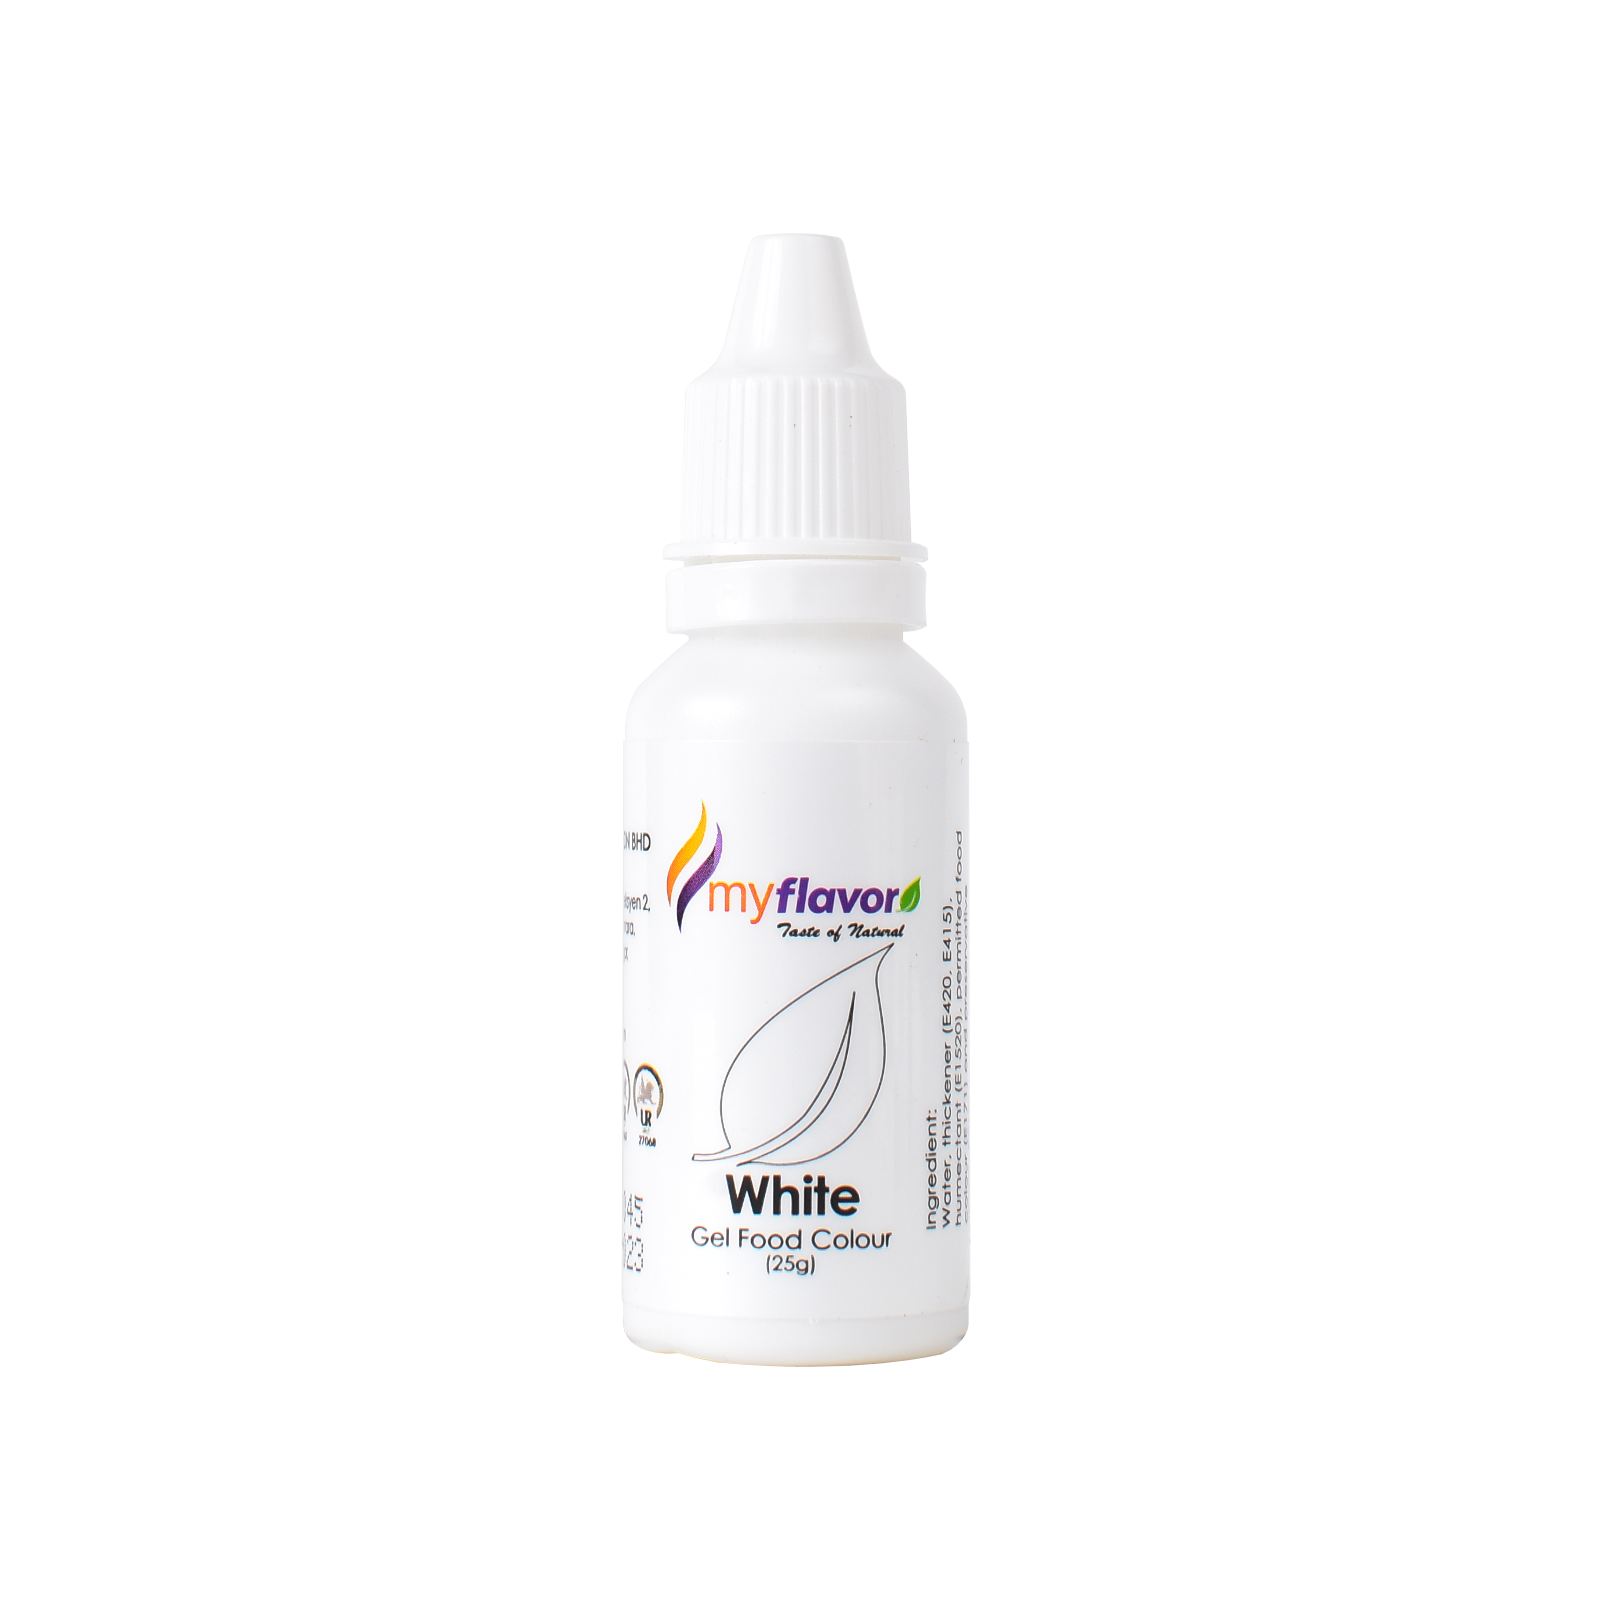 My Flavor White Gel Food Colour 25g.png